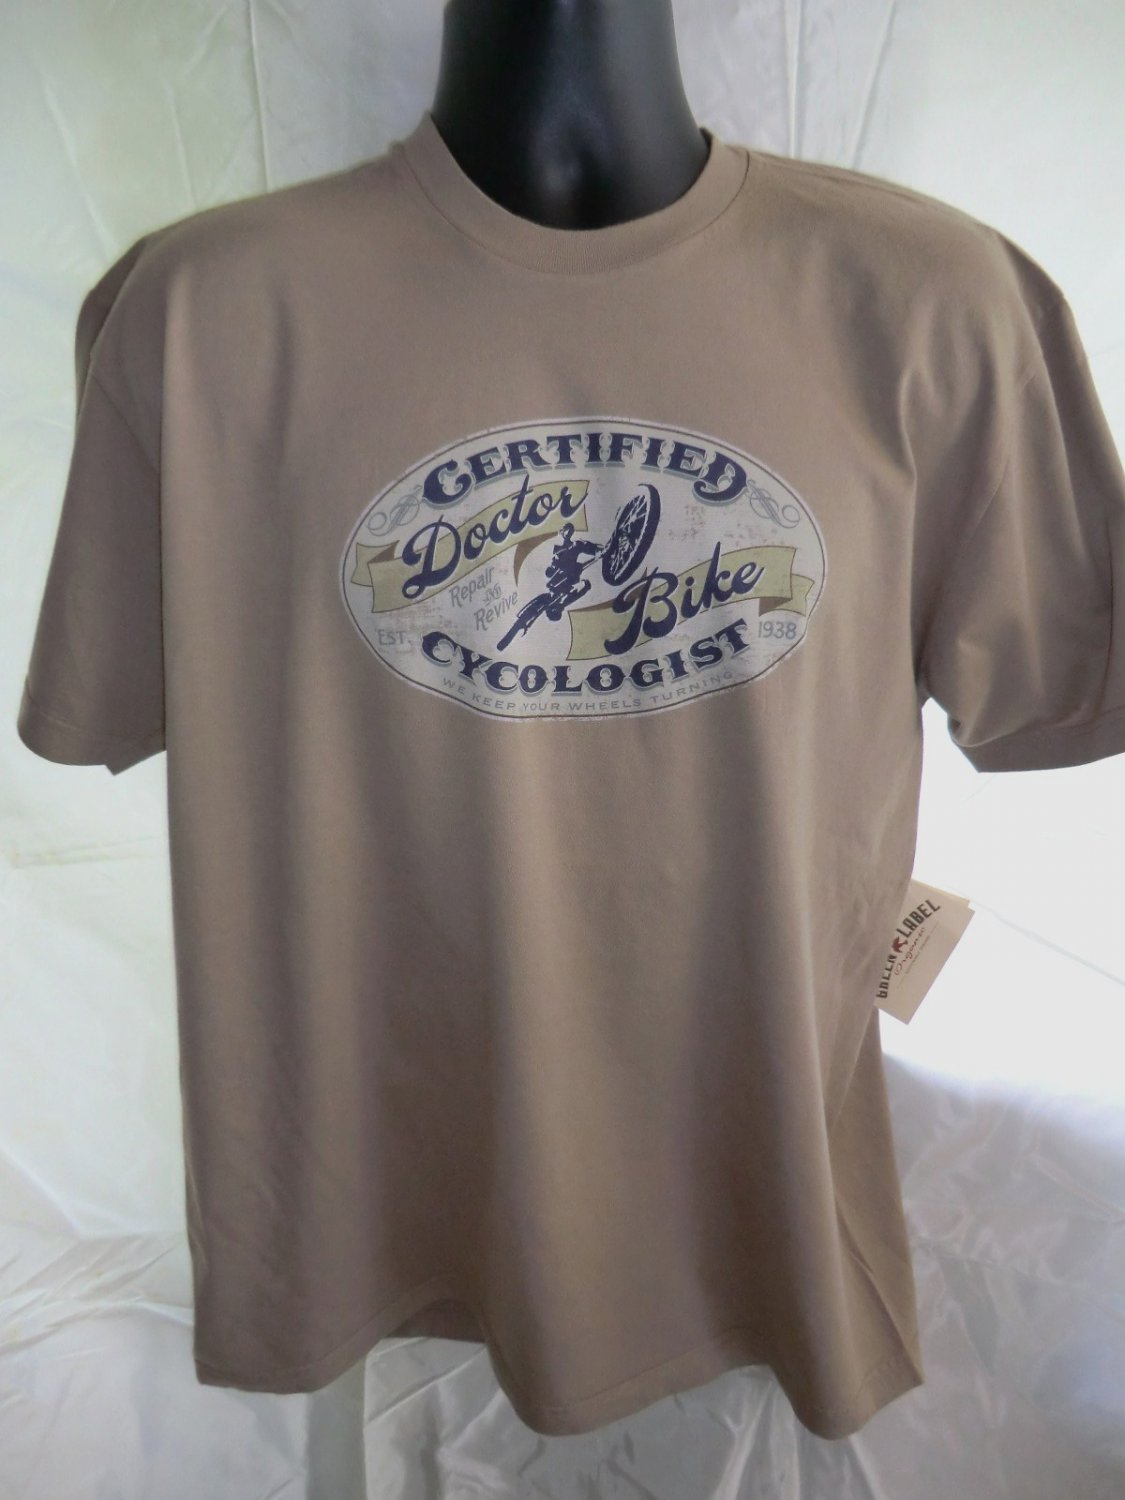 SOLD! NWT Certified CYCOLOGIST Bike Doctor T-Shirt Size Large or XL